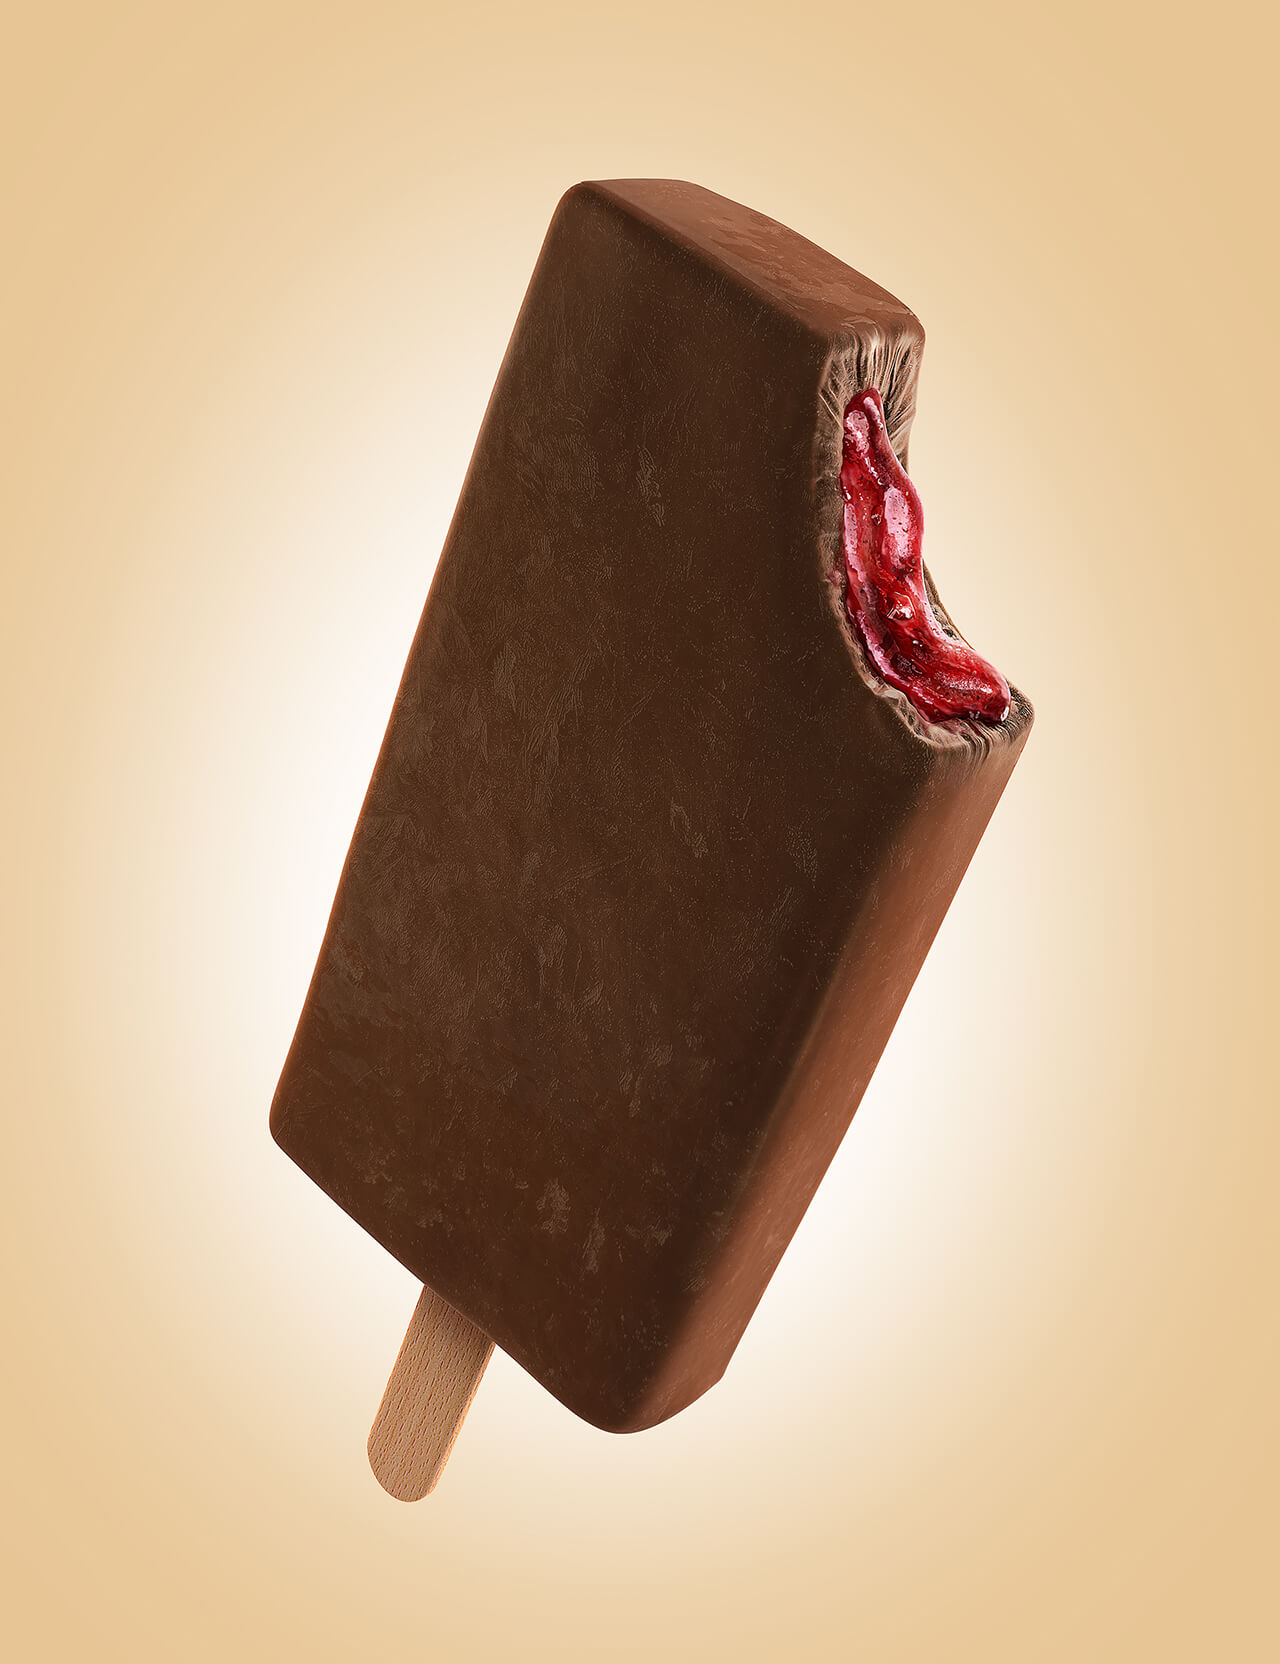 Computer generated image of a chocolate ice lolly with a bite taken showing fruit filling